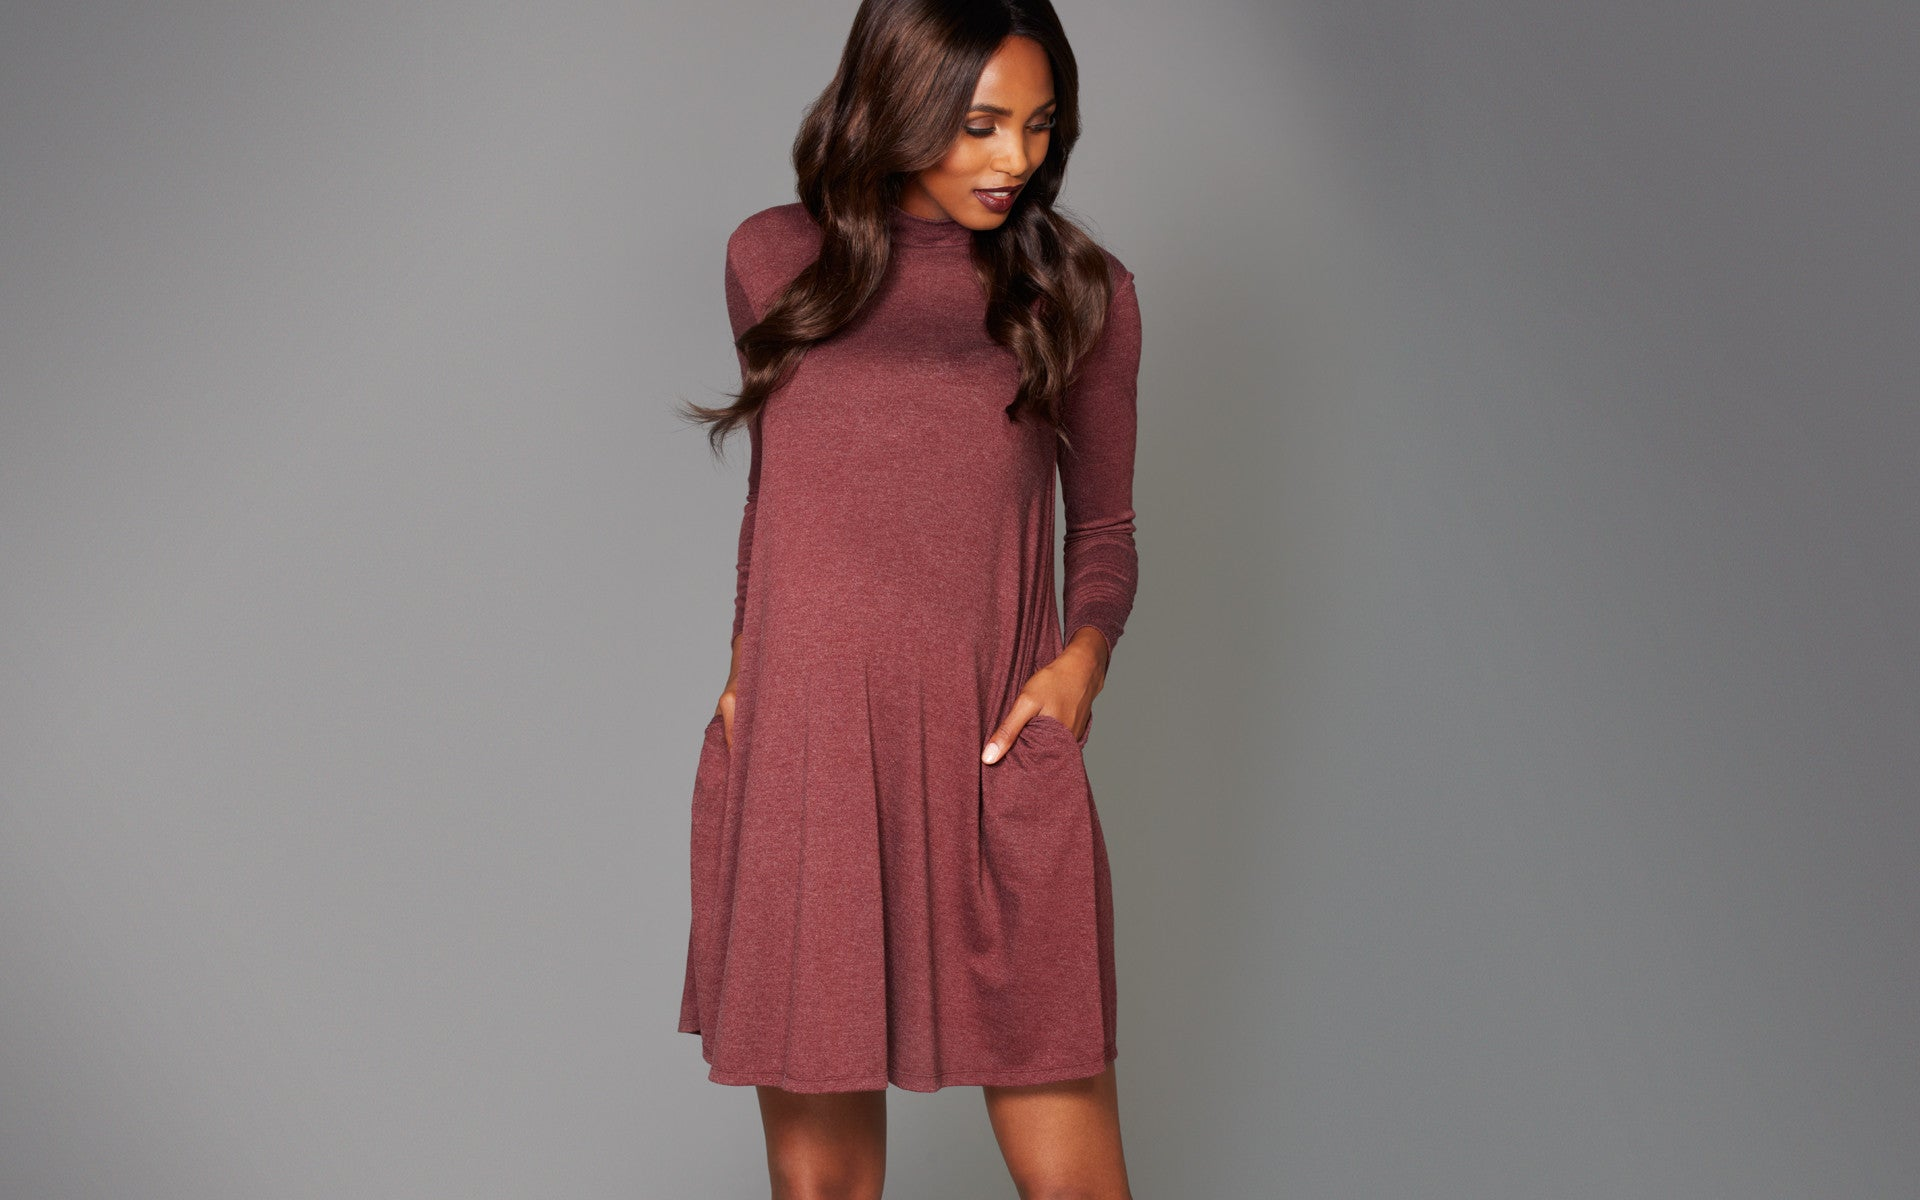 Maternity maxi t shirt dresses cherry melon online tagged cherry melon maternity dresses offer the perfect combination of comfort and style allowing you to feel fabulous every single day perfect for work casual ombrellifo Choice Image